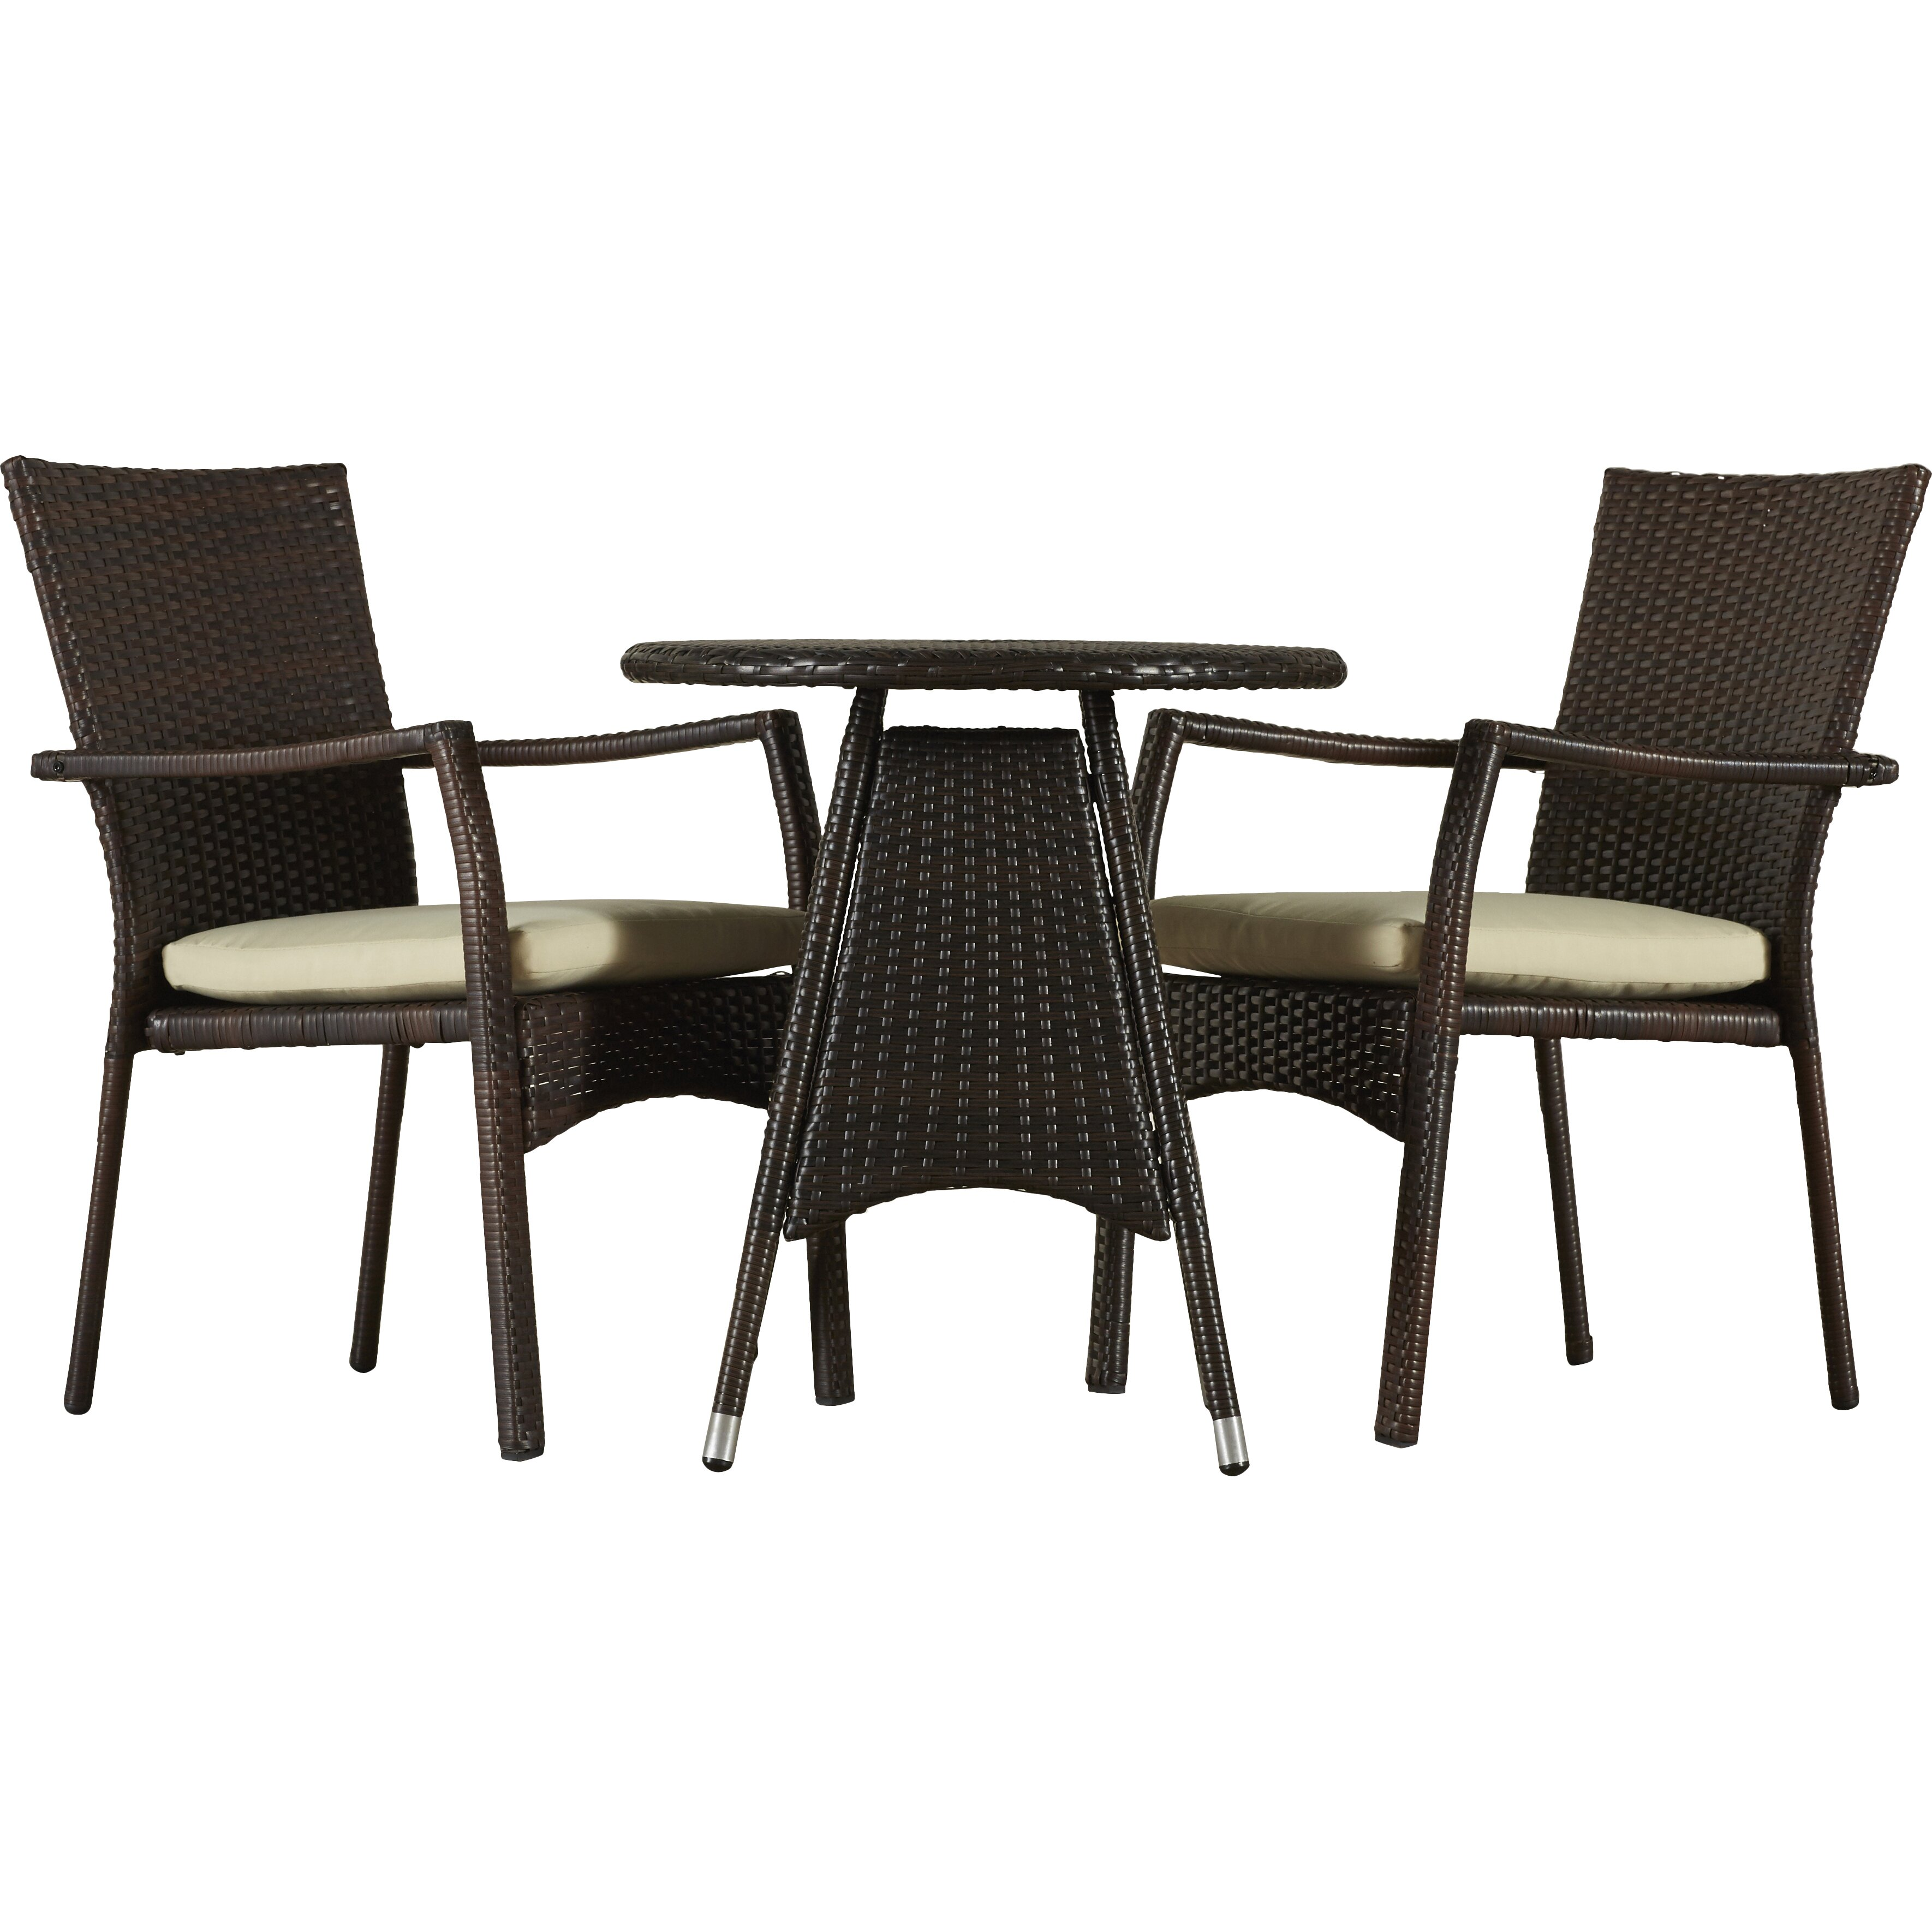 Very Impressive portraiture of Outdoor Patio Furniture Two Person Patio Dining Sets Beachcrest  with #884444 color and 3540x3540 pixels